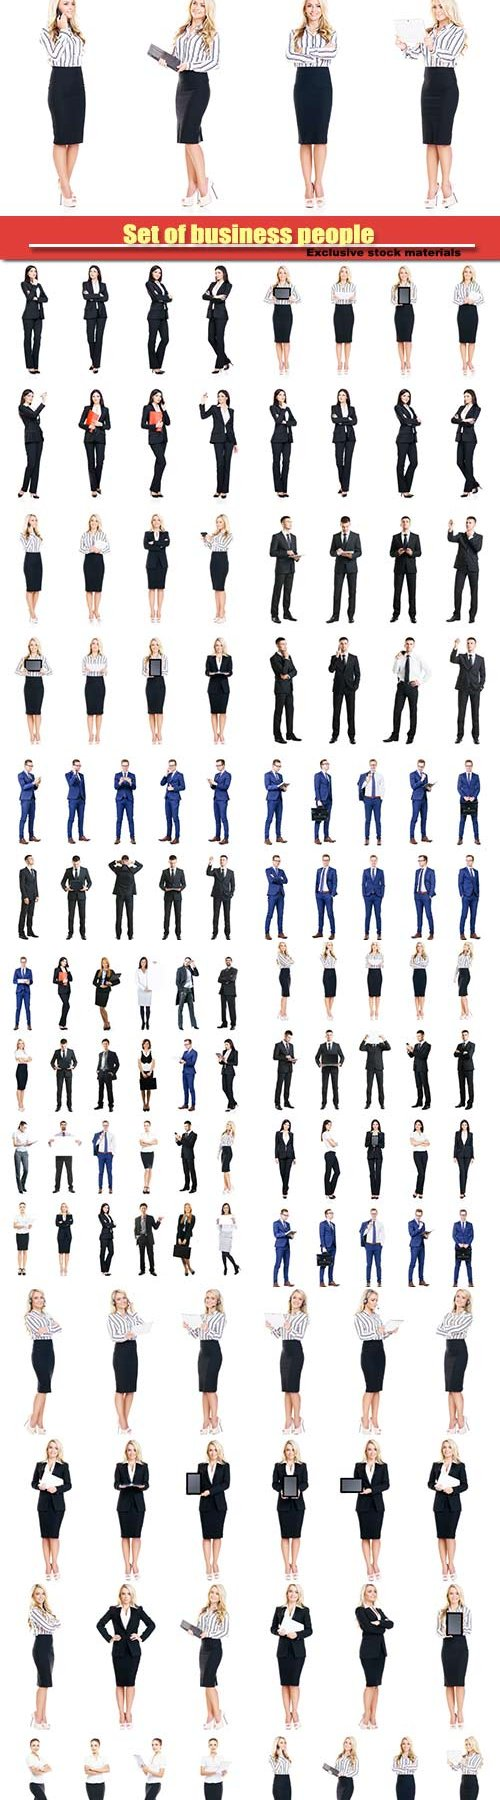 Set of business people isolated on white background